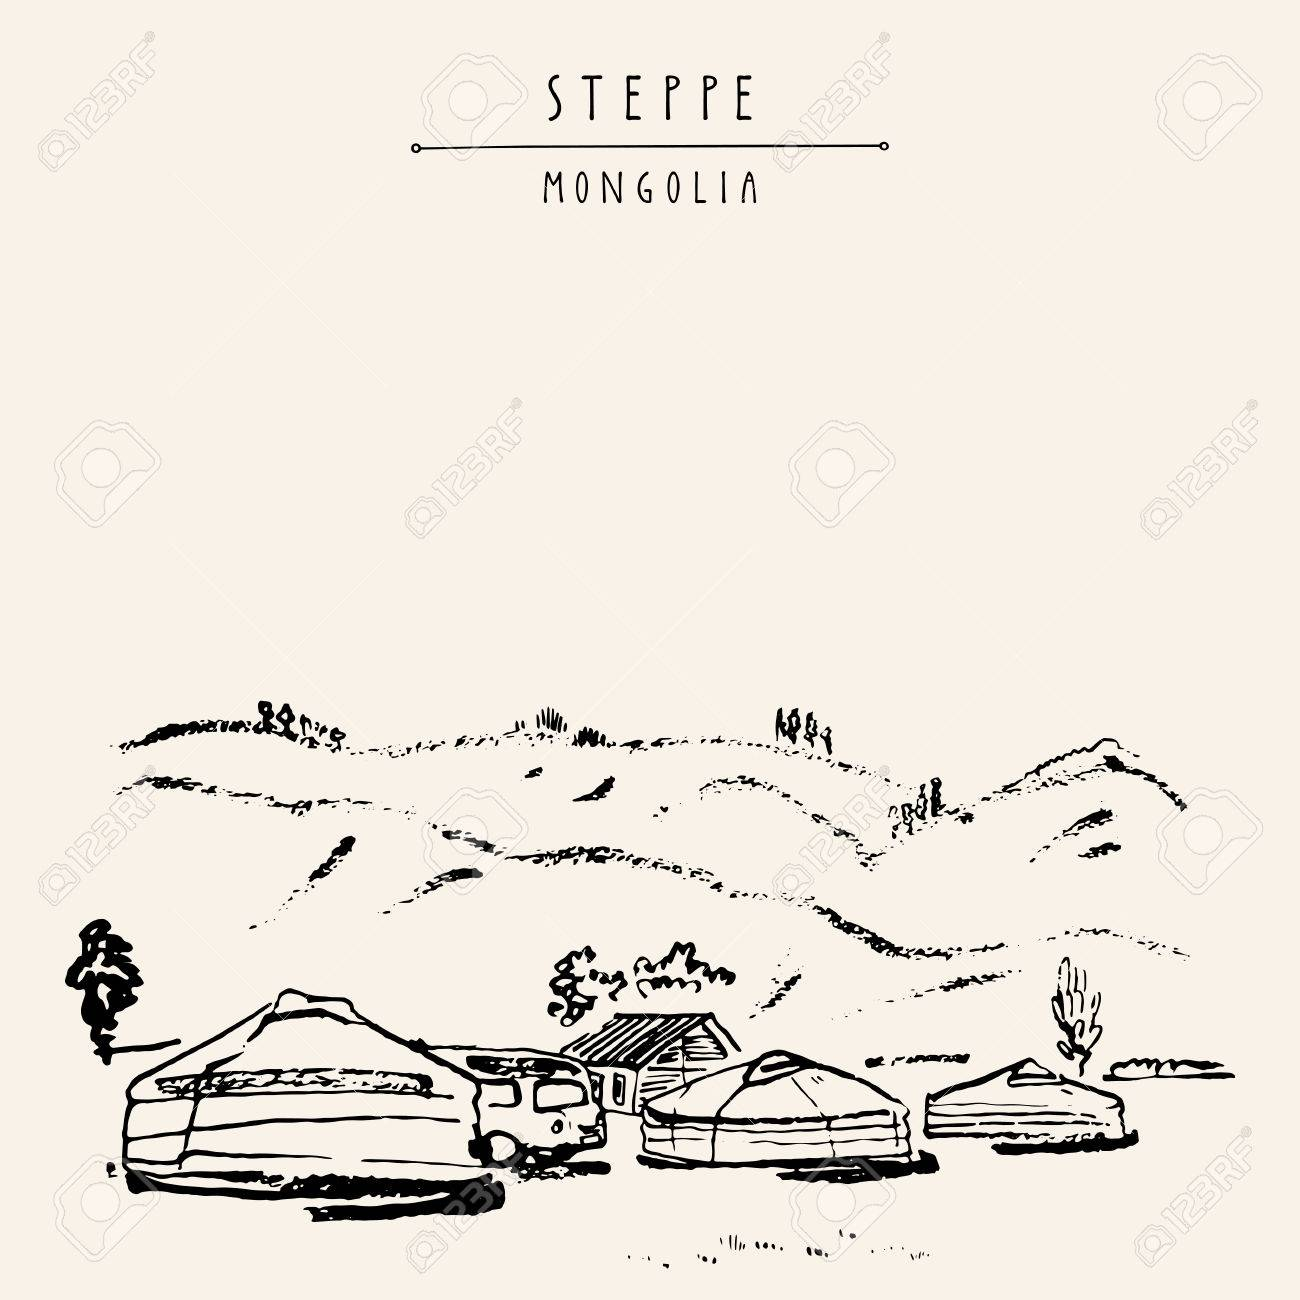 Vector Mongolia postcard. Yurts (gers) traditional Mongolian dwellings in Mongolian steppe. Mountains on background. Travel sketch. Brushpen graphic art. Hand drawn vintage book illustration, postcard - 64116027